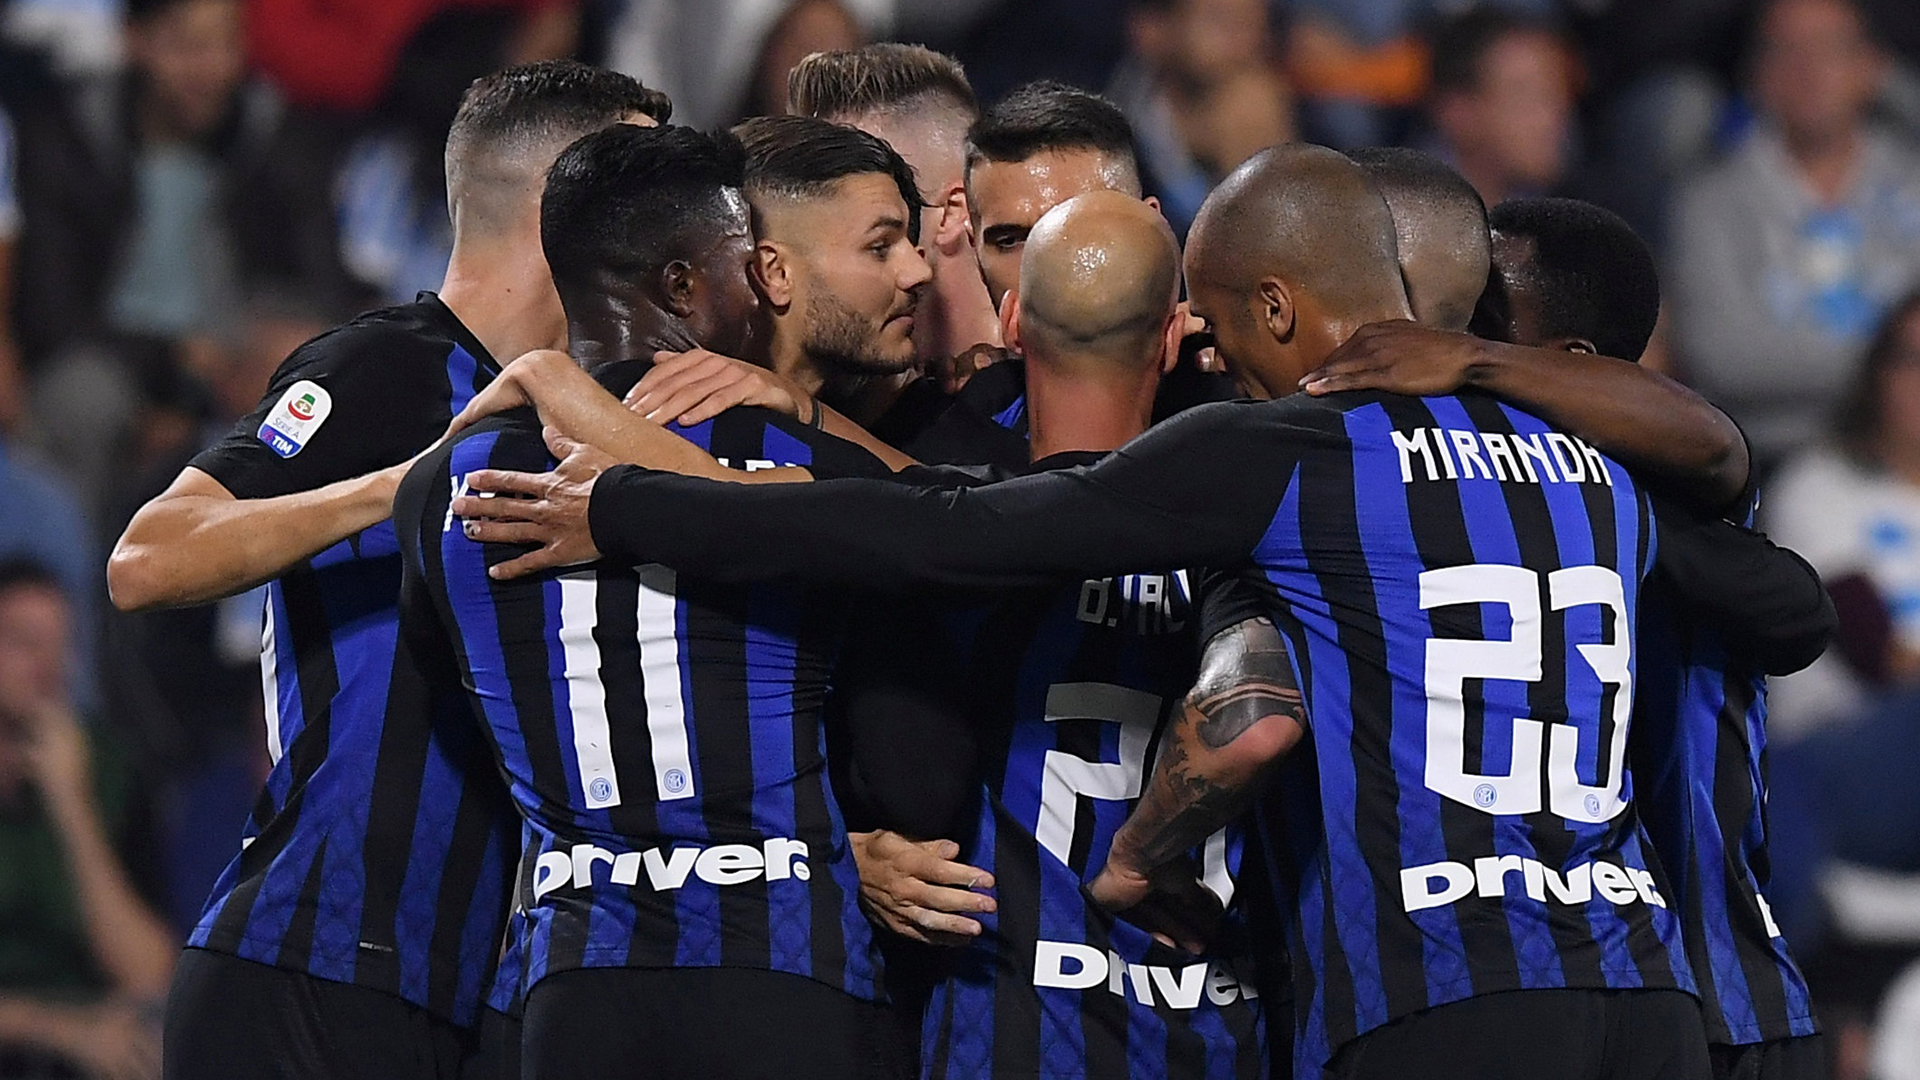 Soccer Football – Serie A – SPAL v Inter Milan – Paolo Mazza, Ferrara, Italy – October 7, 2018  Inter Milan's Mauro Icardi celebrates scoring their first goal with teammates    REUTERS/Alberto Lingria